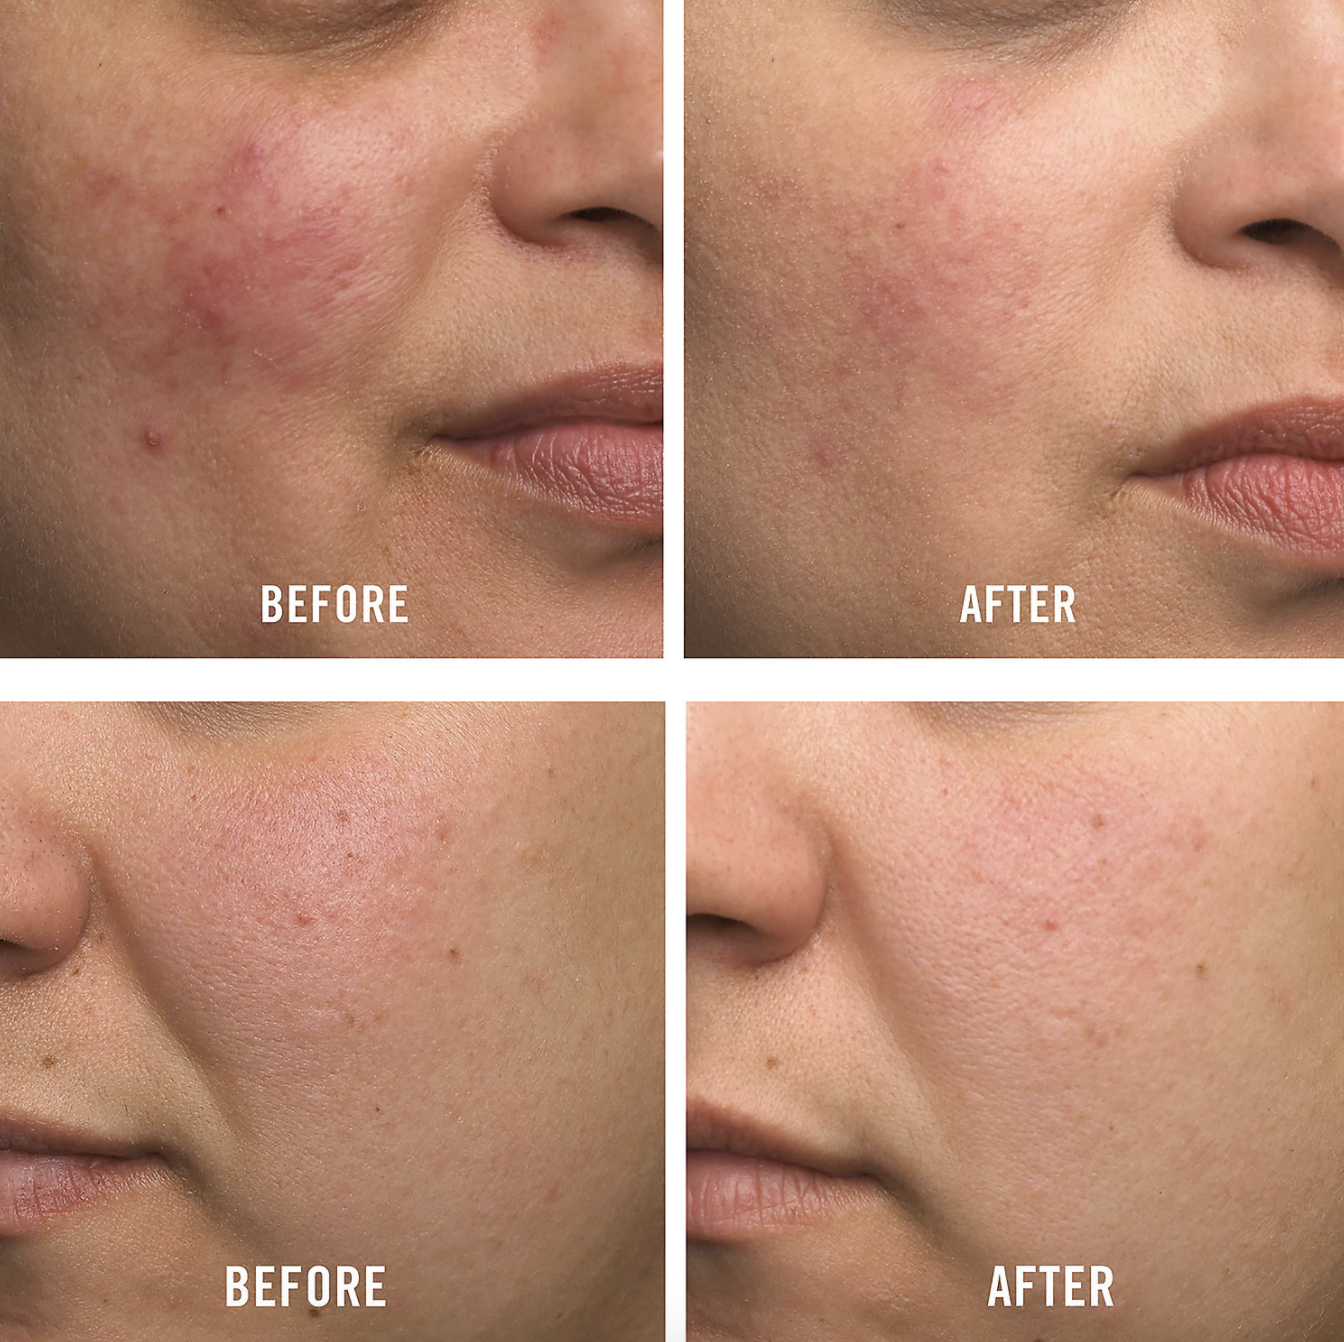 two before and afters, showing red inflamed skin first, then noticeably calmer, less red skin after product use